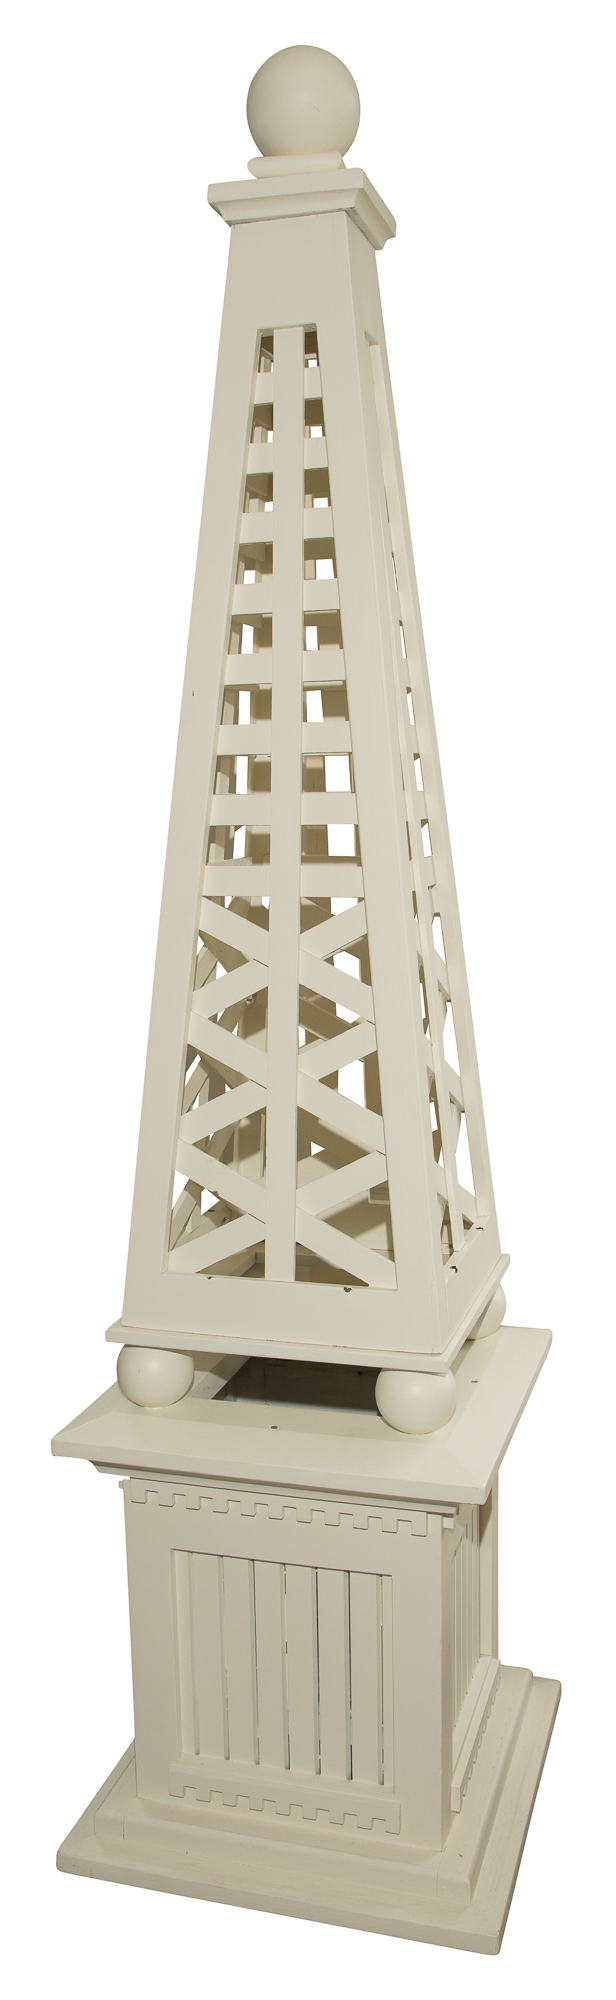 Lot image - Pair of White Painted Wood Garden Obelisks